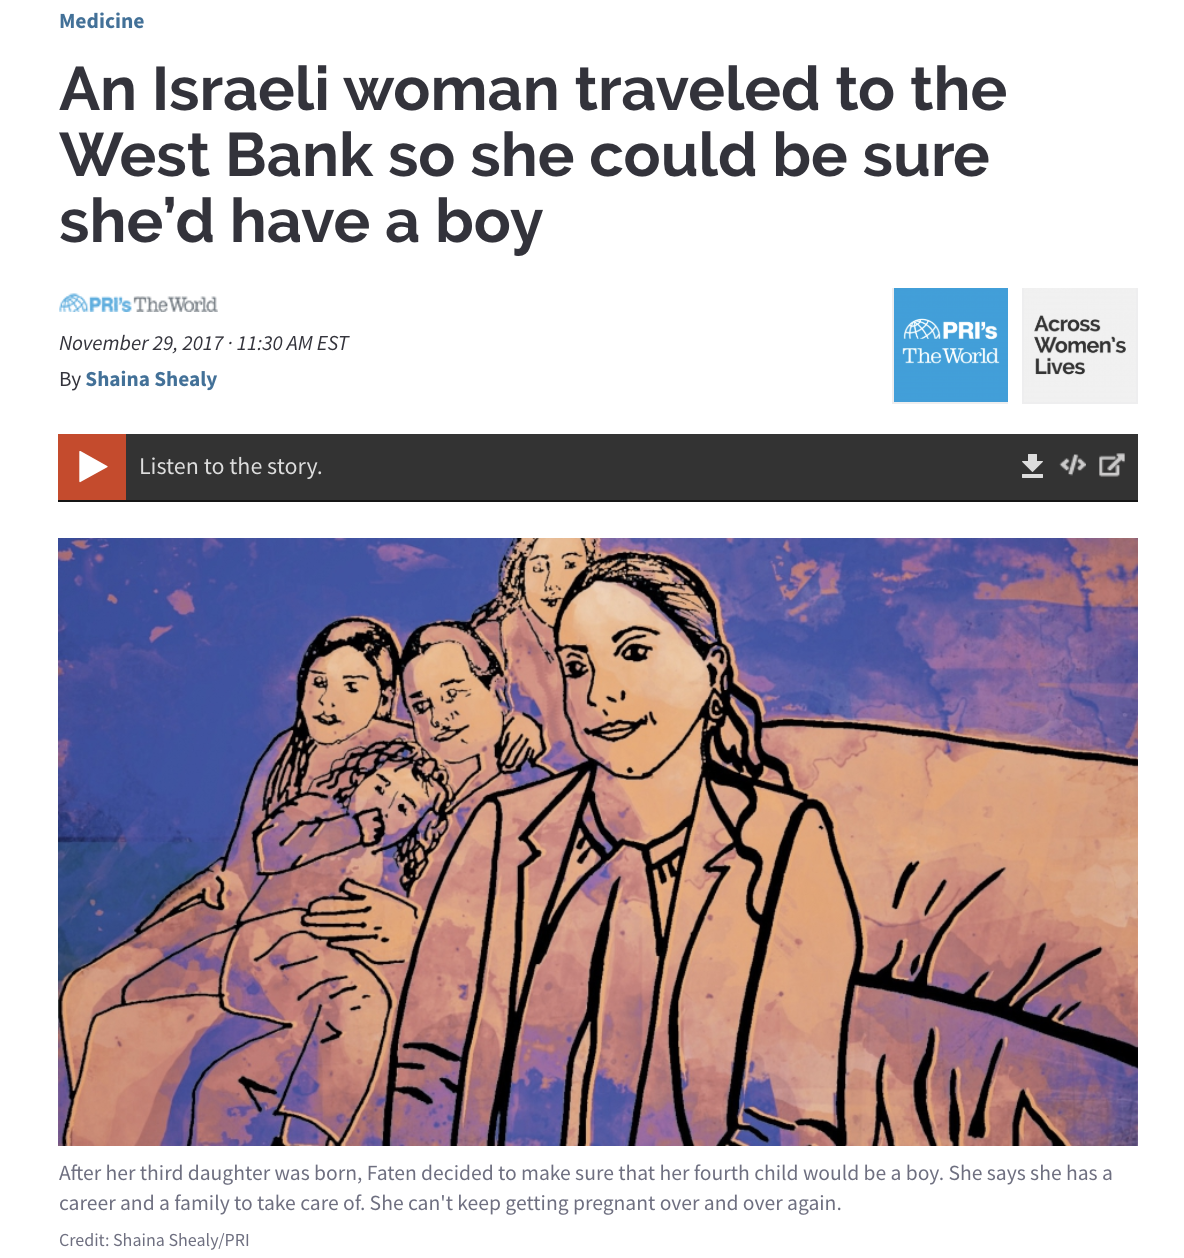 An Israeli woman traveled to the West Bank so she could be sure she'd have a boy